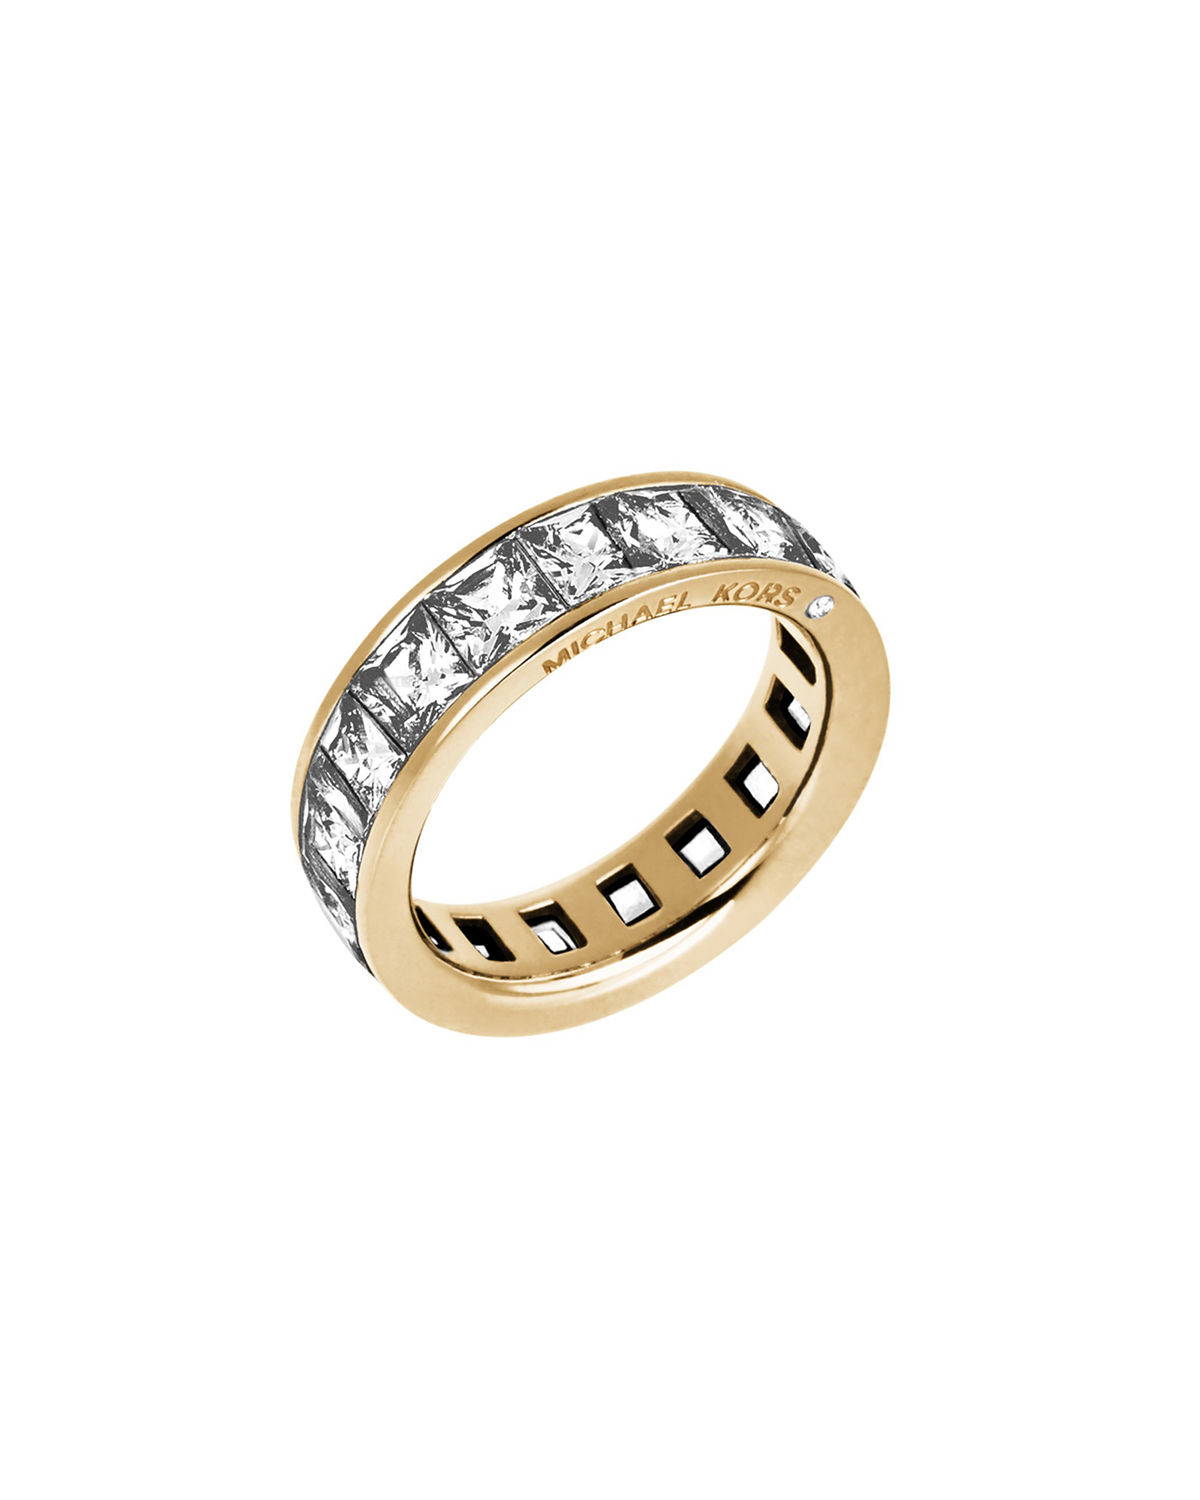 874d3f601320 Lyst - Michael Kors Park Avenue Square Cz Band Ring in Metal ...